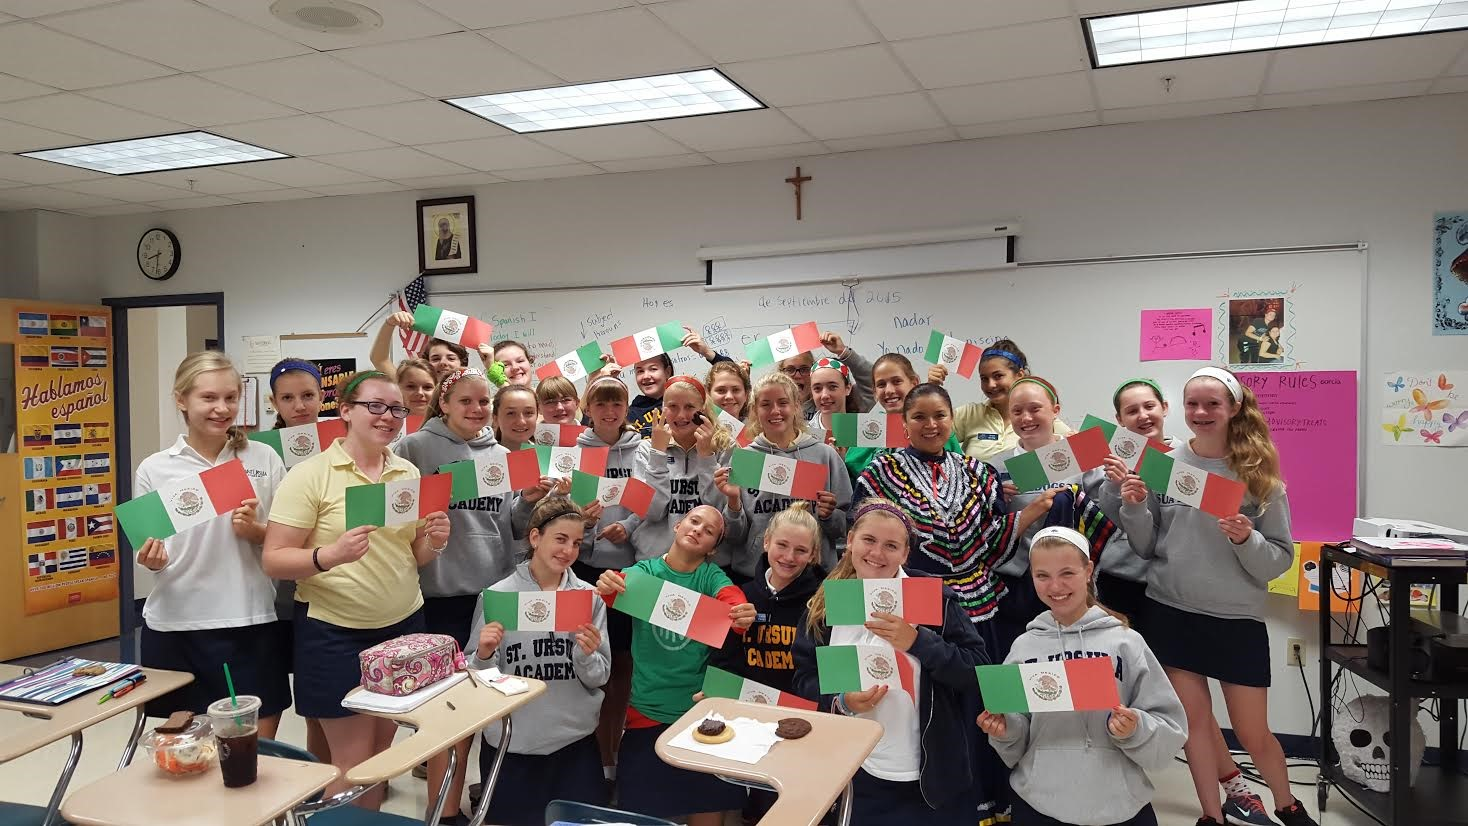 Ms. Garcia's students learned Mexican Independence Day is on Sept. 16, not May 5 as many believe